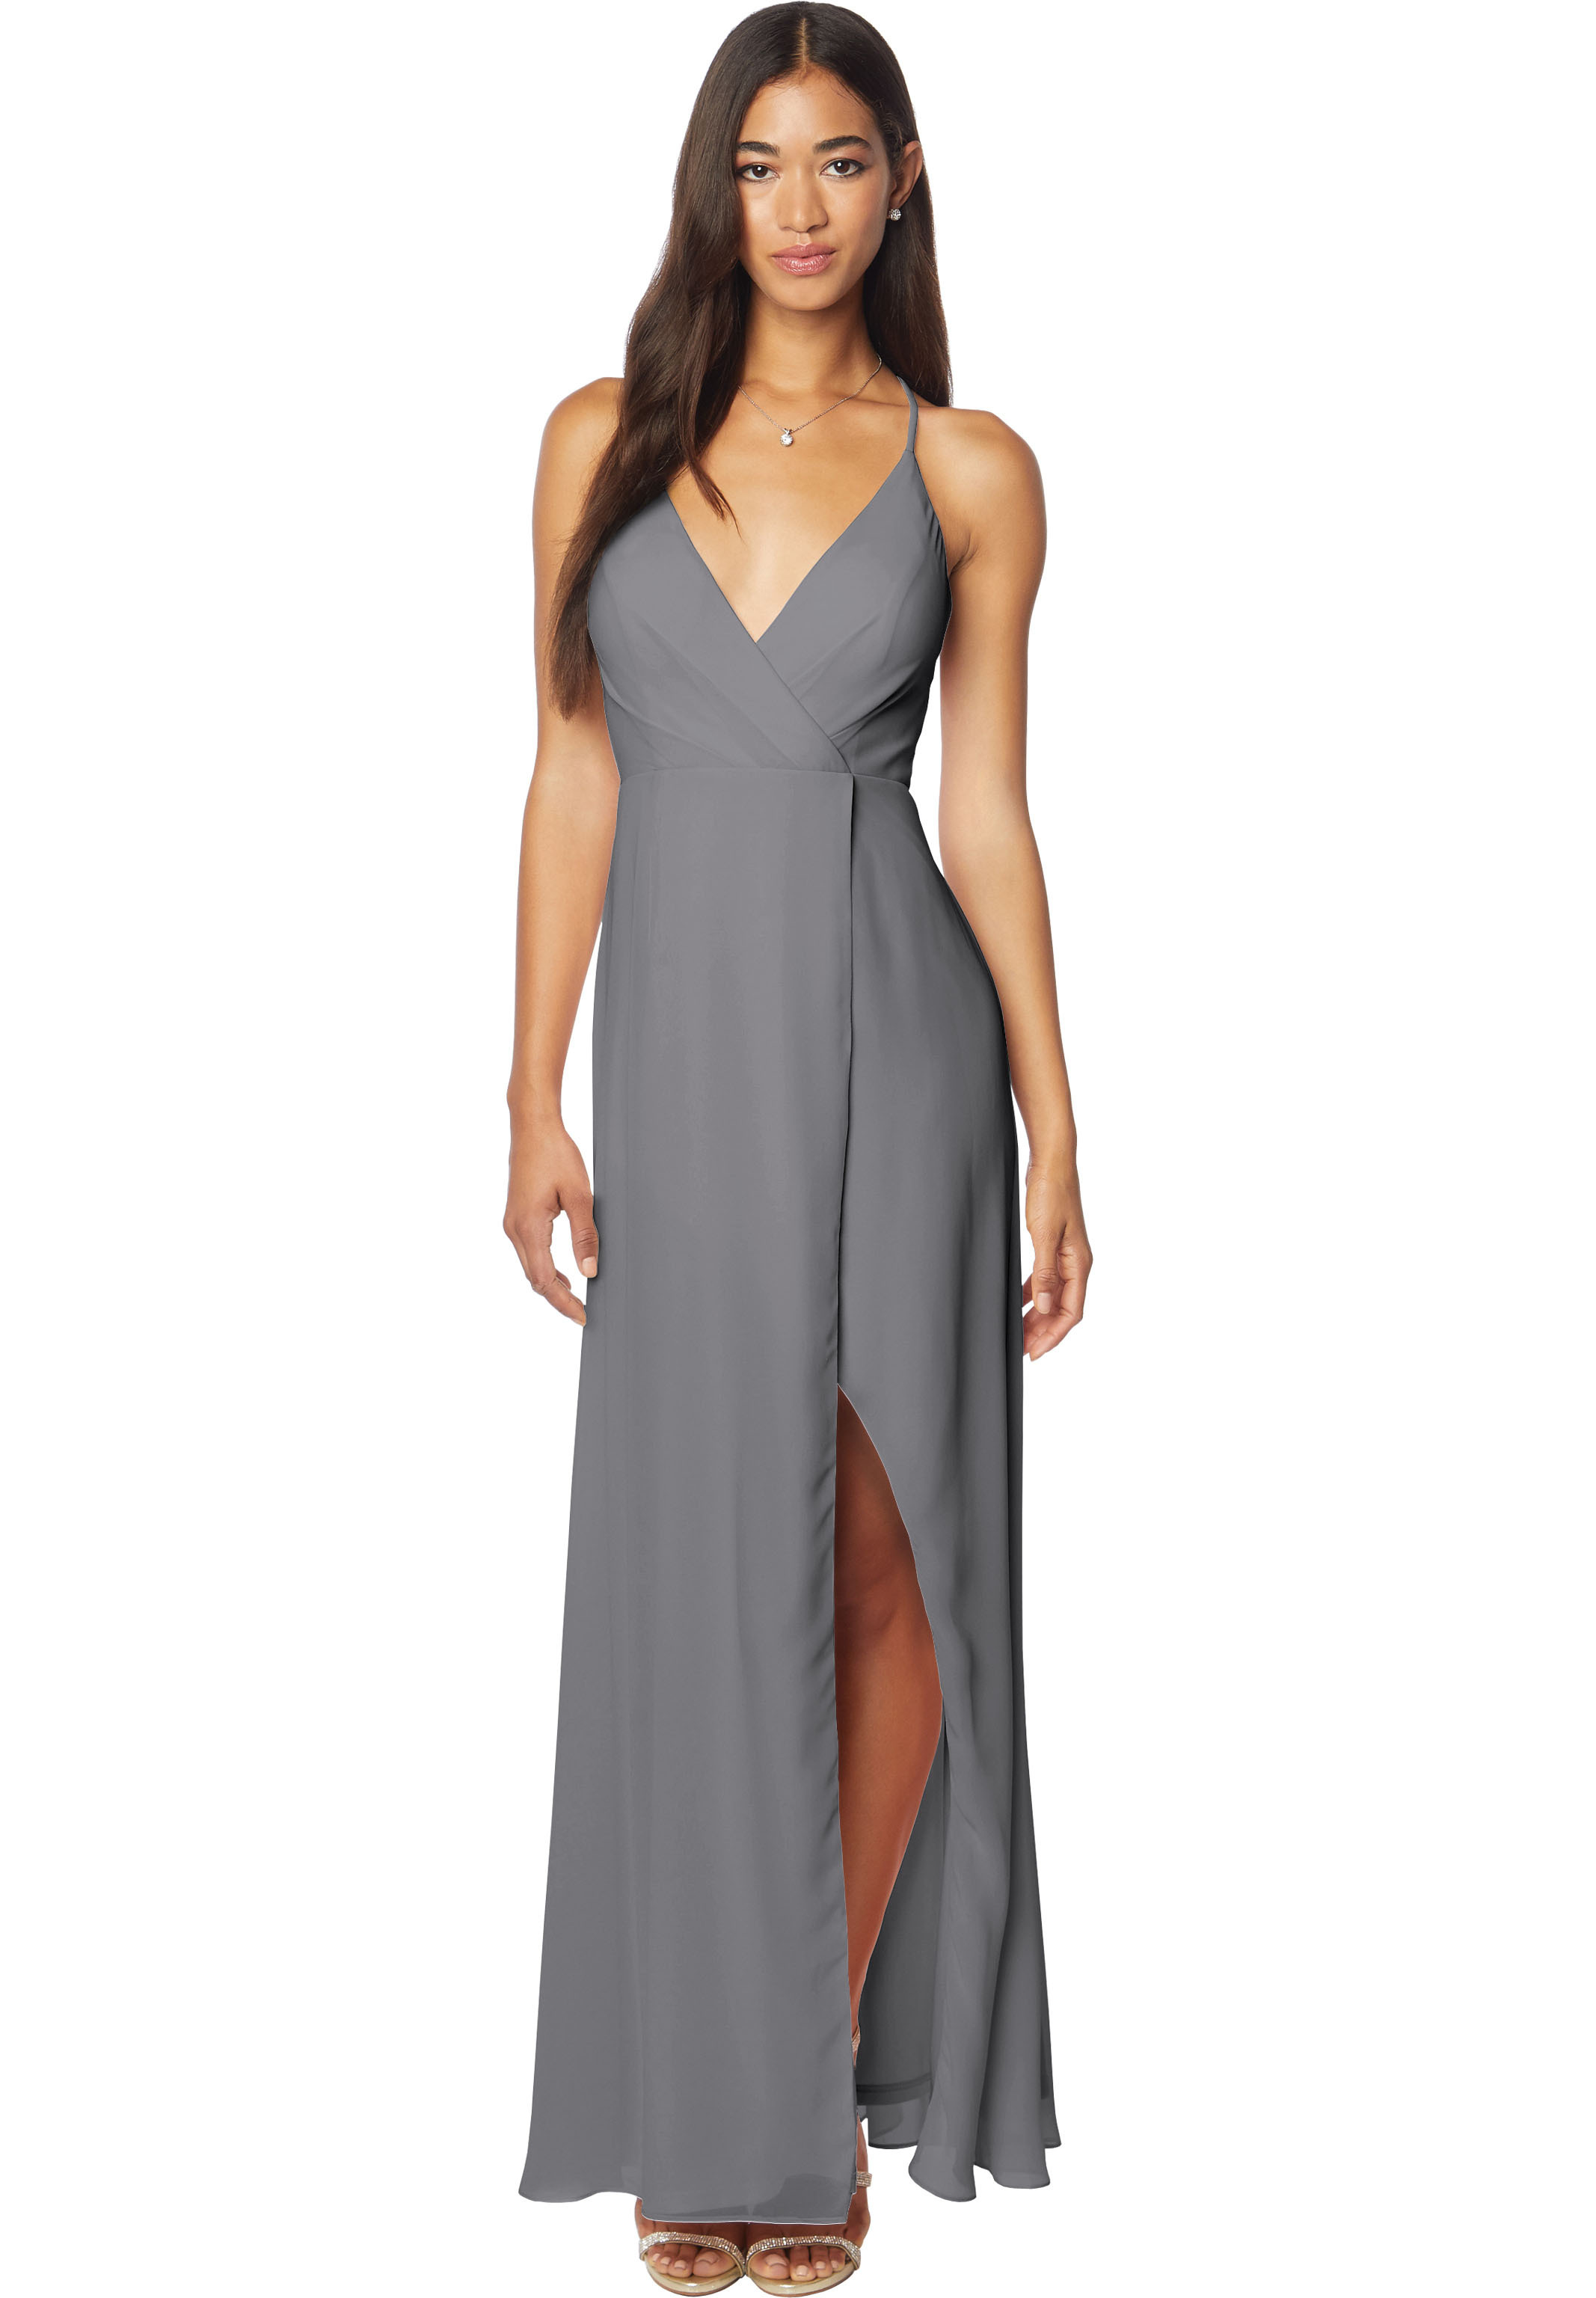 Bill Levkoff PEWTER Chiffon V-neck A-line gown, $170.00 Front